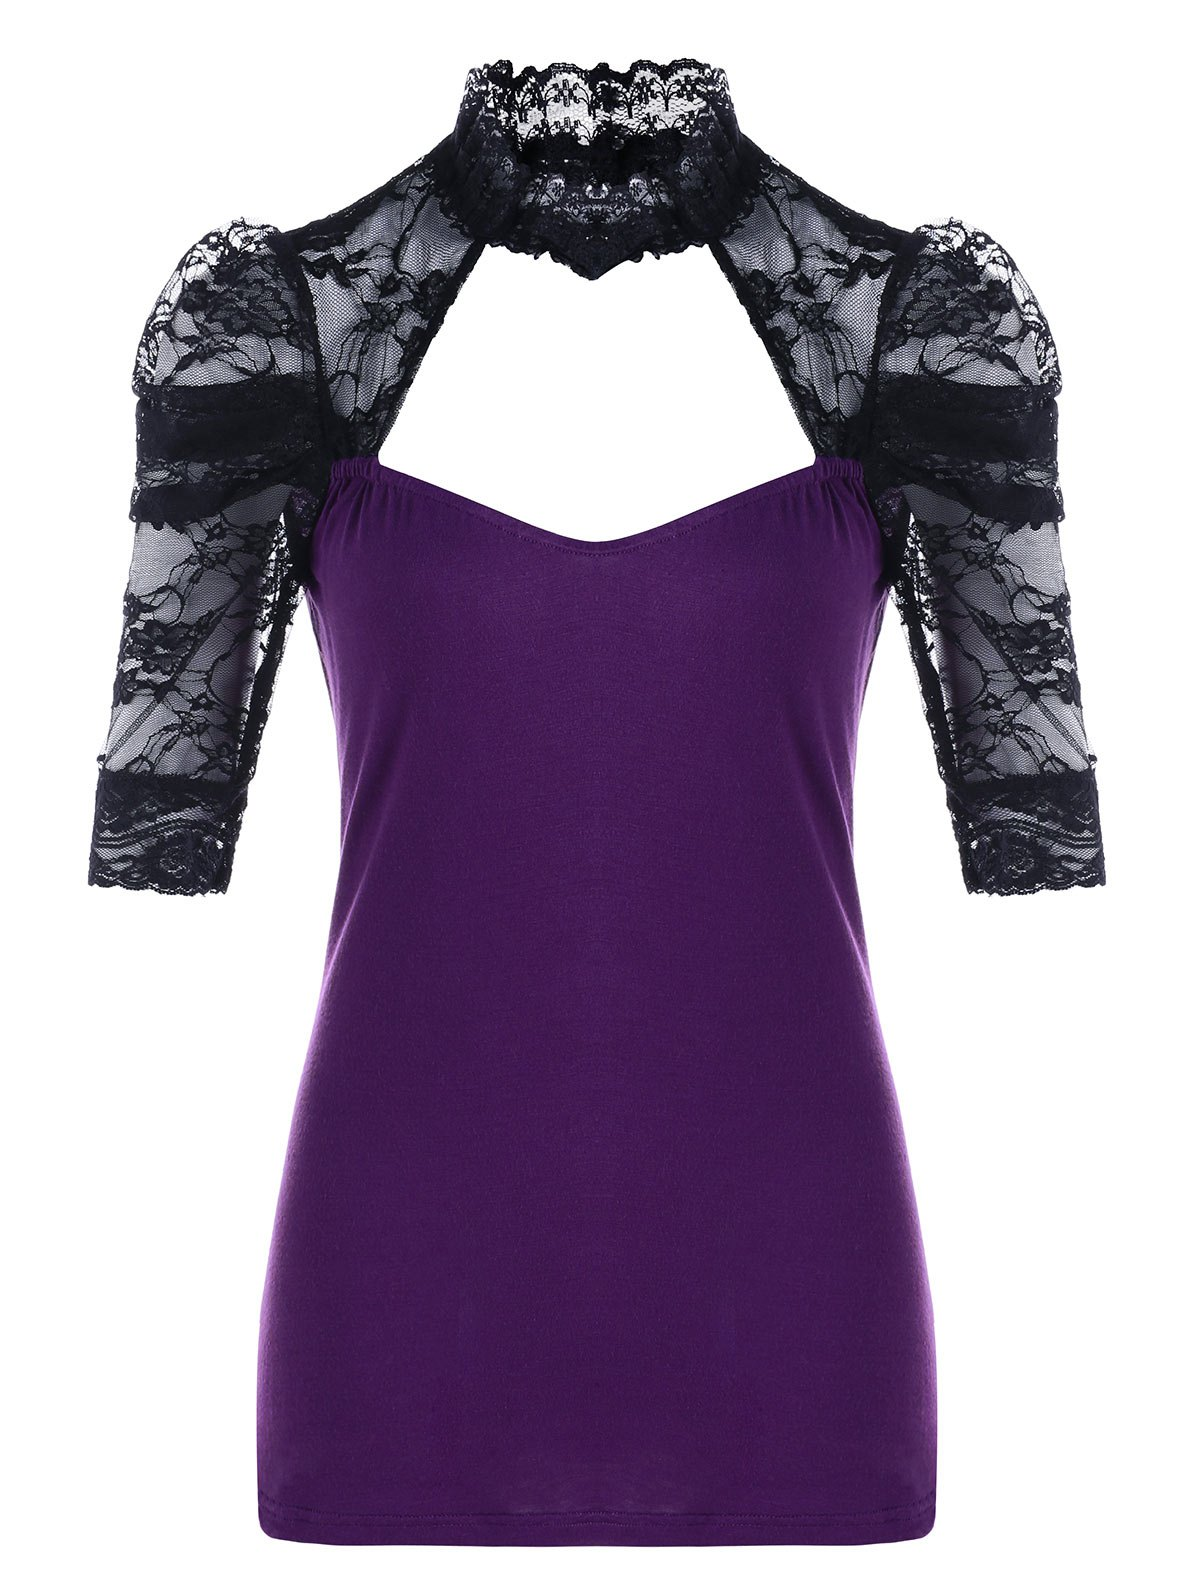 Cut Out Lace Insert TeeWOMEN<br><br>Size: L; Color: PURPLE; Material: Cotton,Spandex; Shirt Length: Regular; Sleeve Length: Short; Collar: Stand-Up Collar; Style: Fashion; Season: Fall,Spring; Pattern Type: Patchwork; Weight: 0.1700kg; Package Contents: 1 x T-shirt;